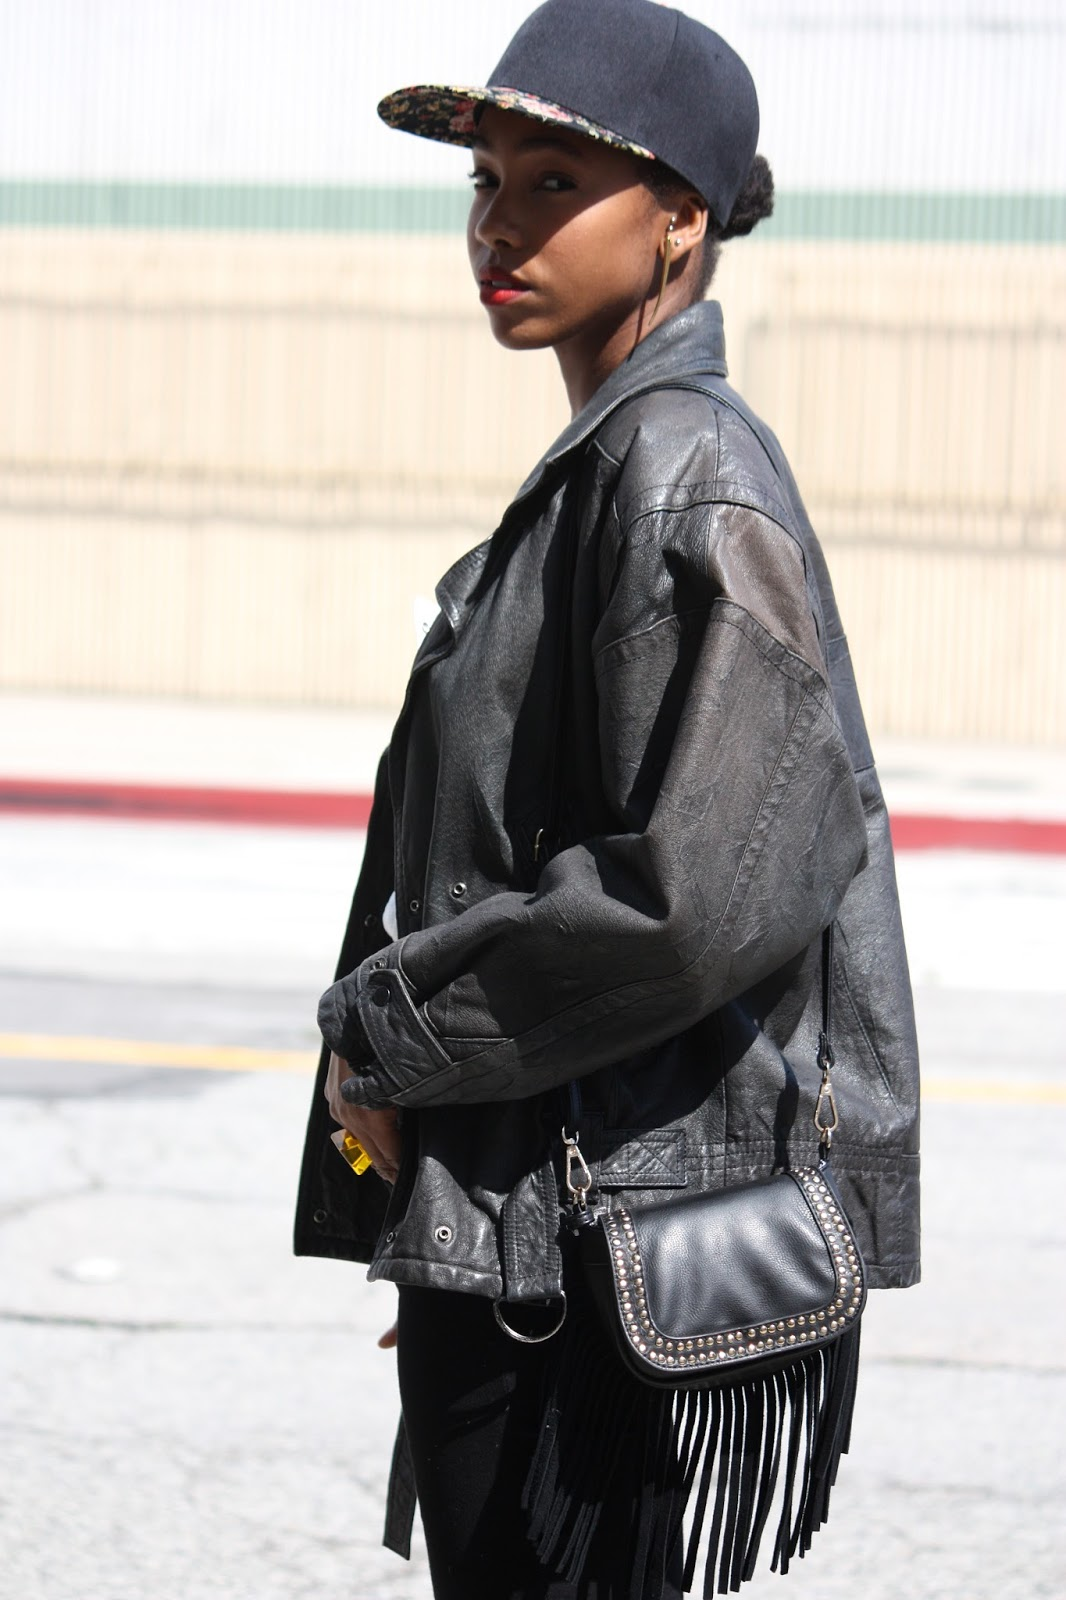 Wearing // vintage leather jacket, MAC Ruby Woo lipstick, Marshalls leather fringe bag